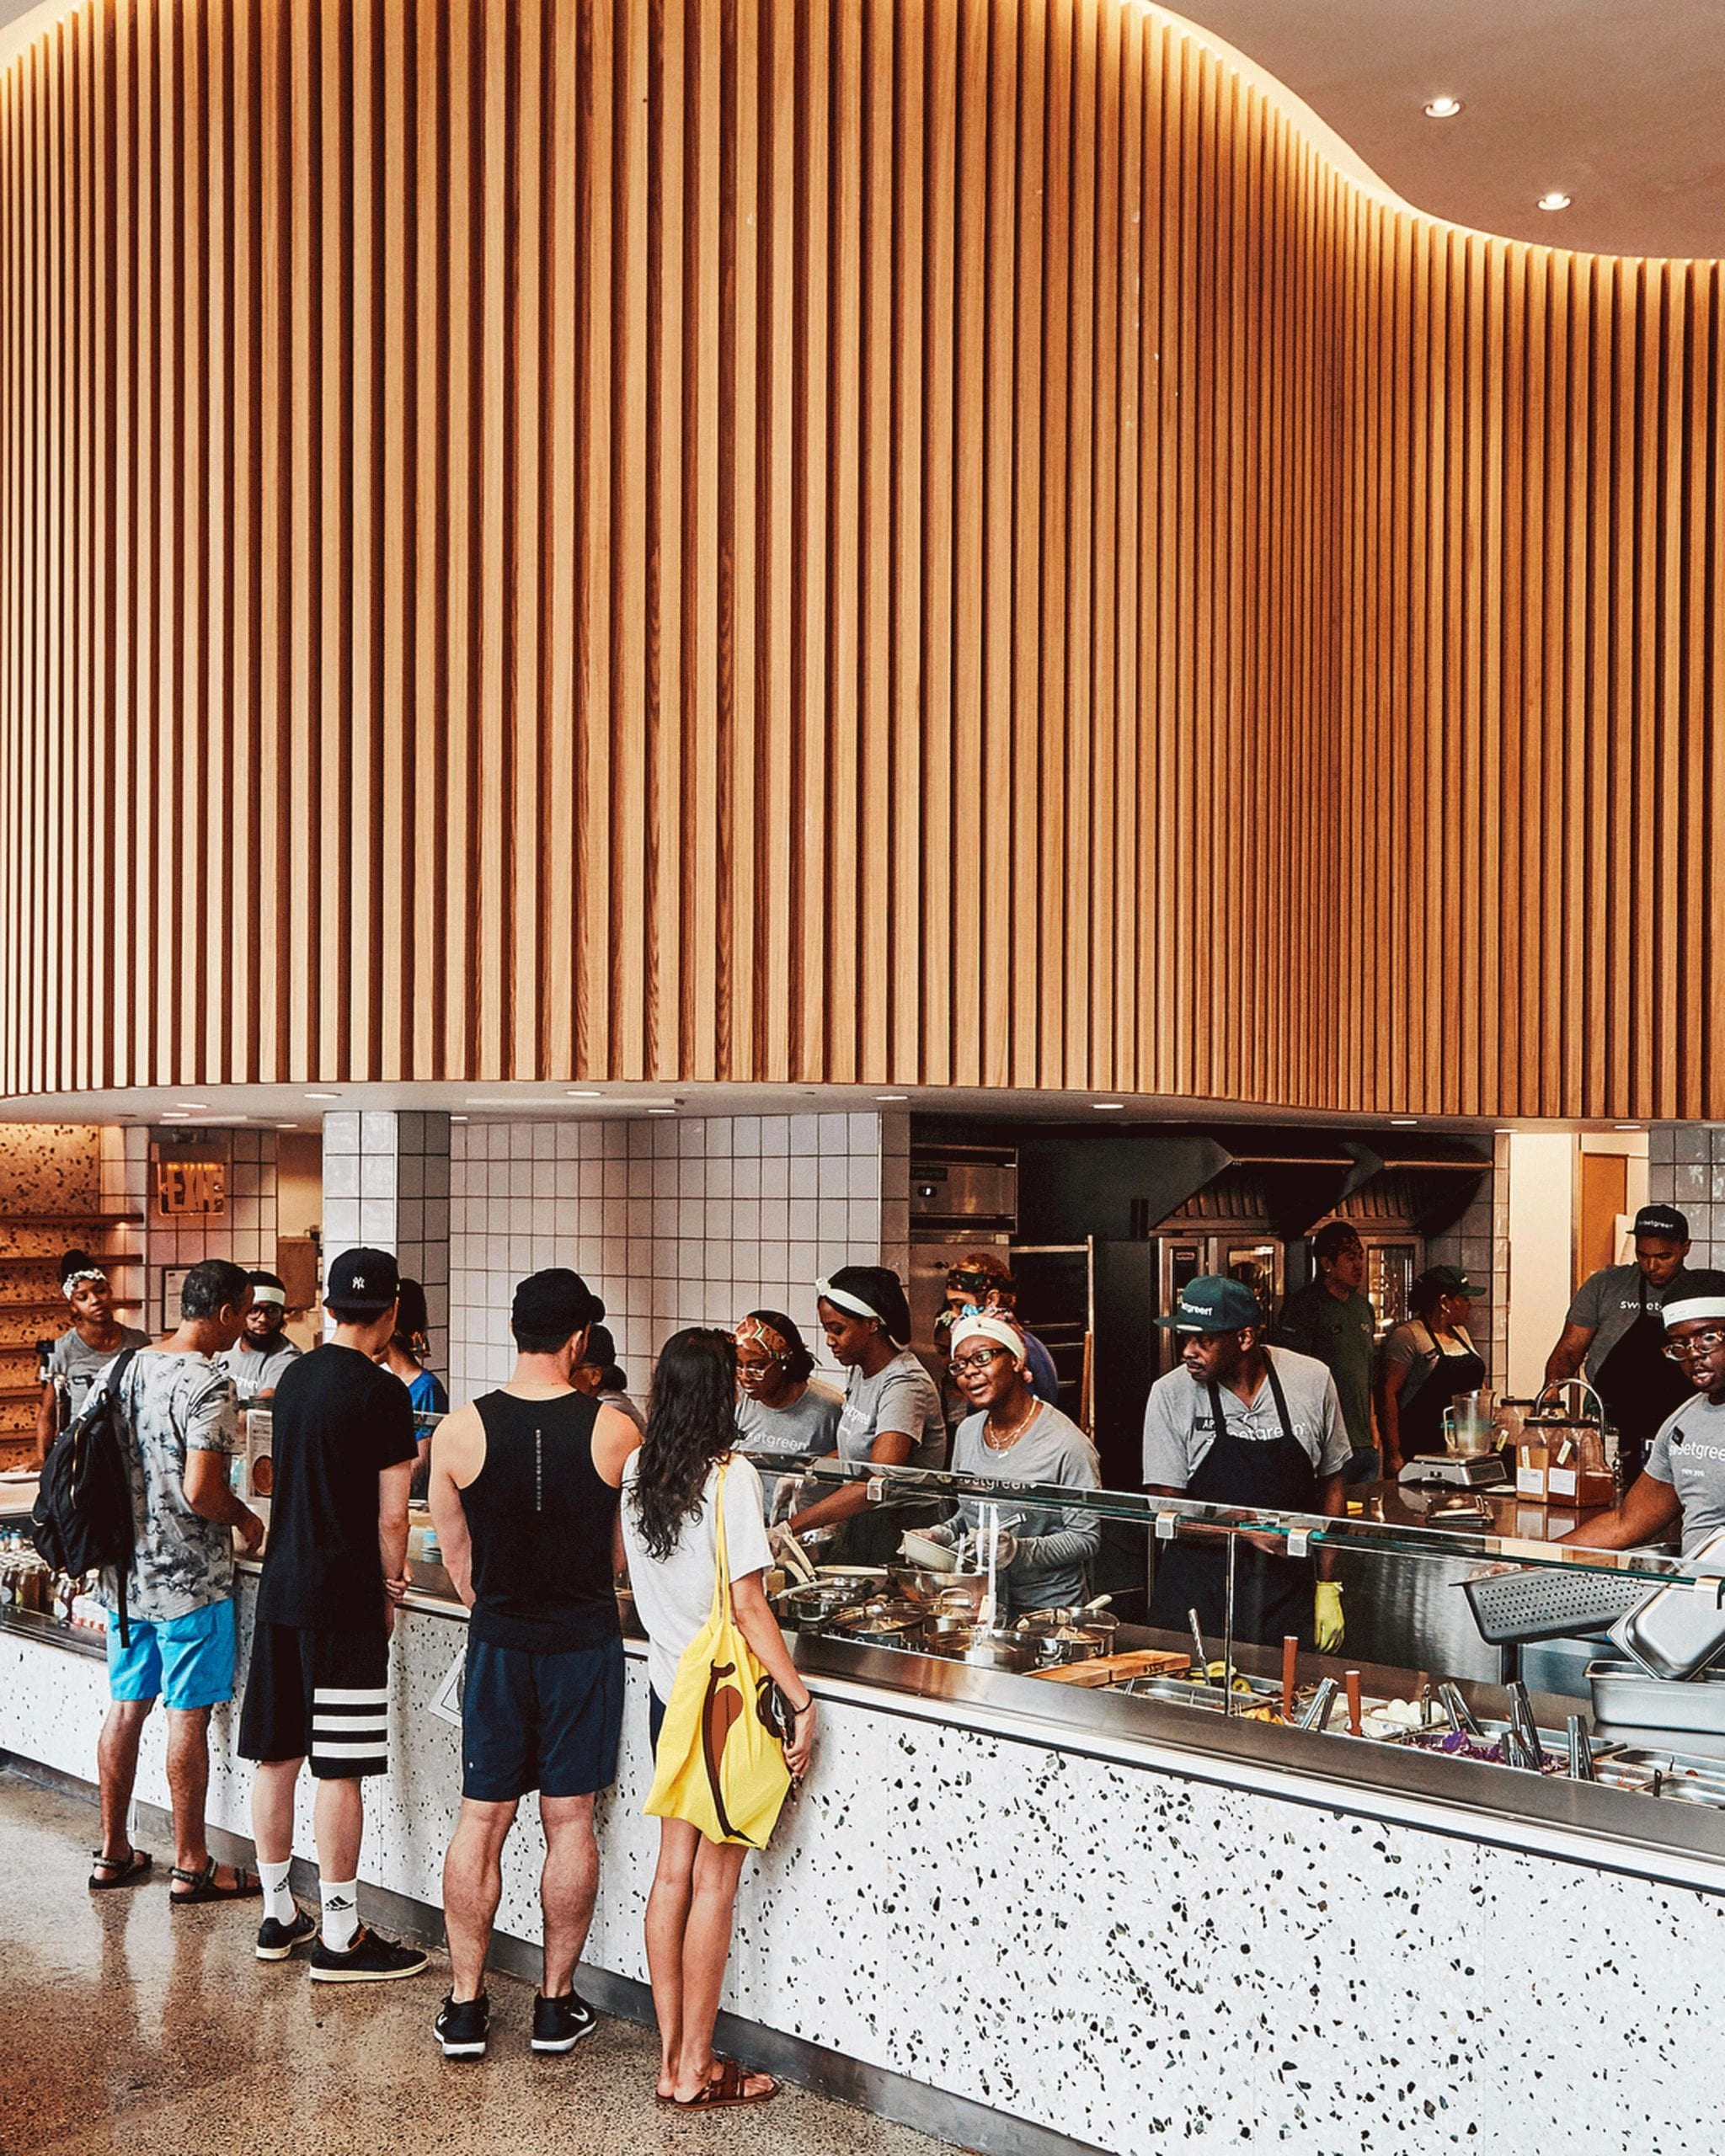 SoundPly Acoustic Ceiling Baffles at SweetGreen, Hudson Yards.